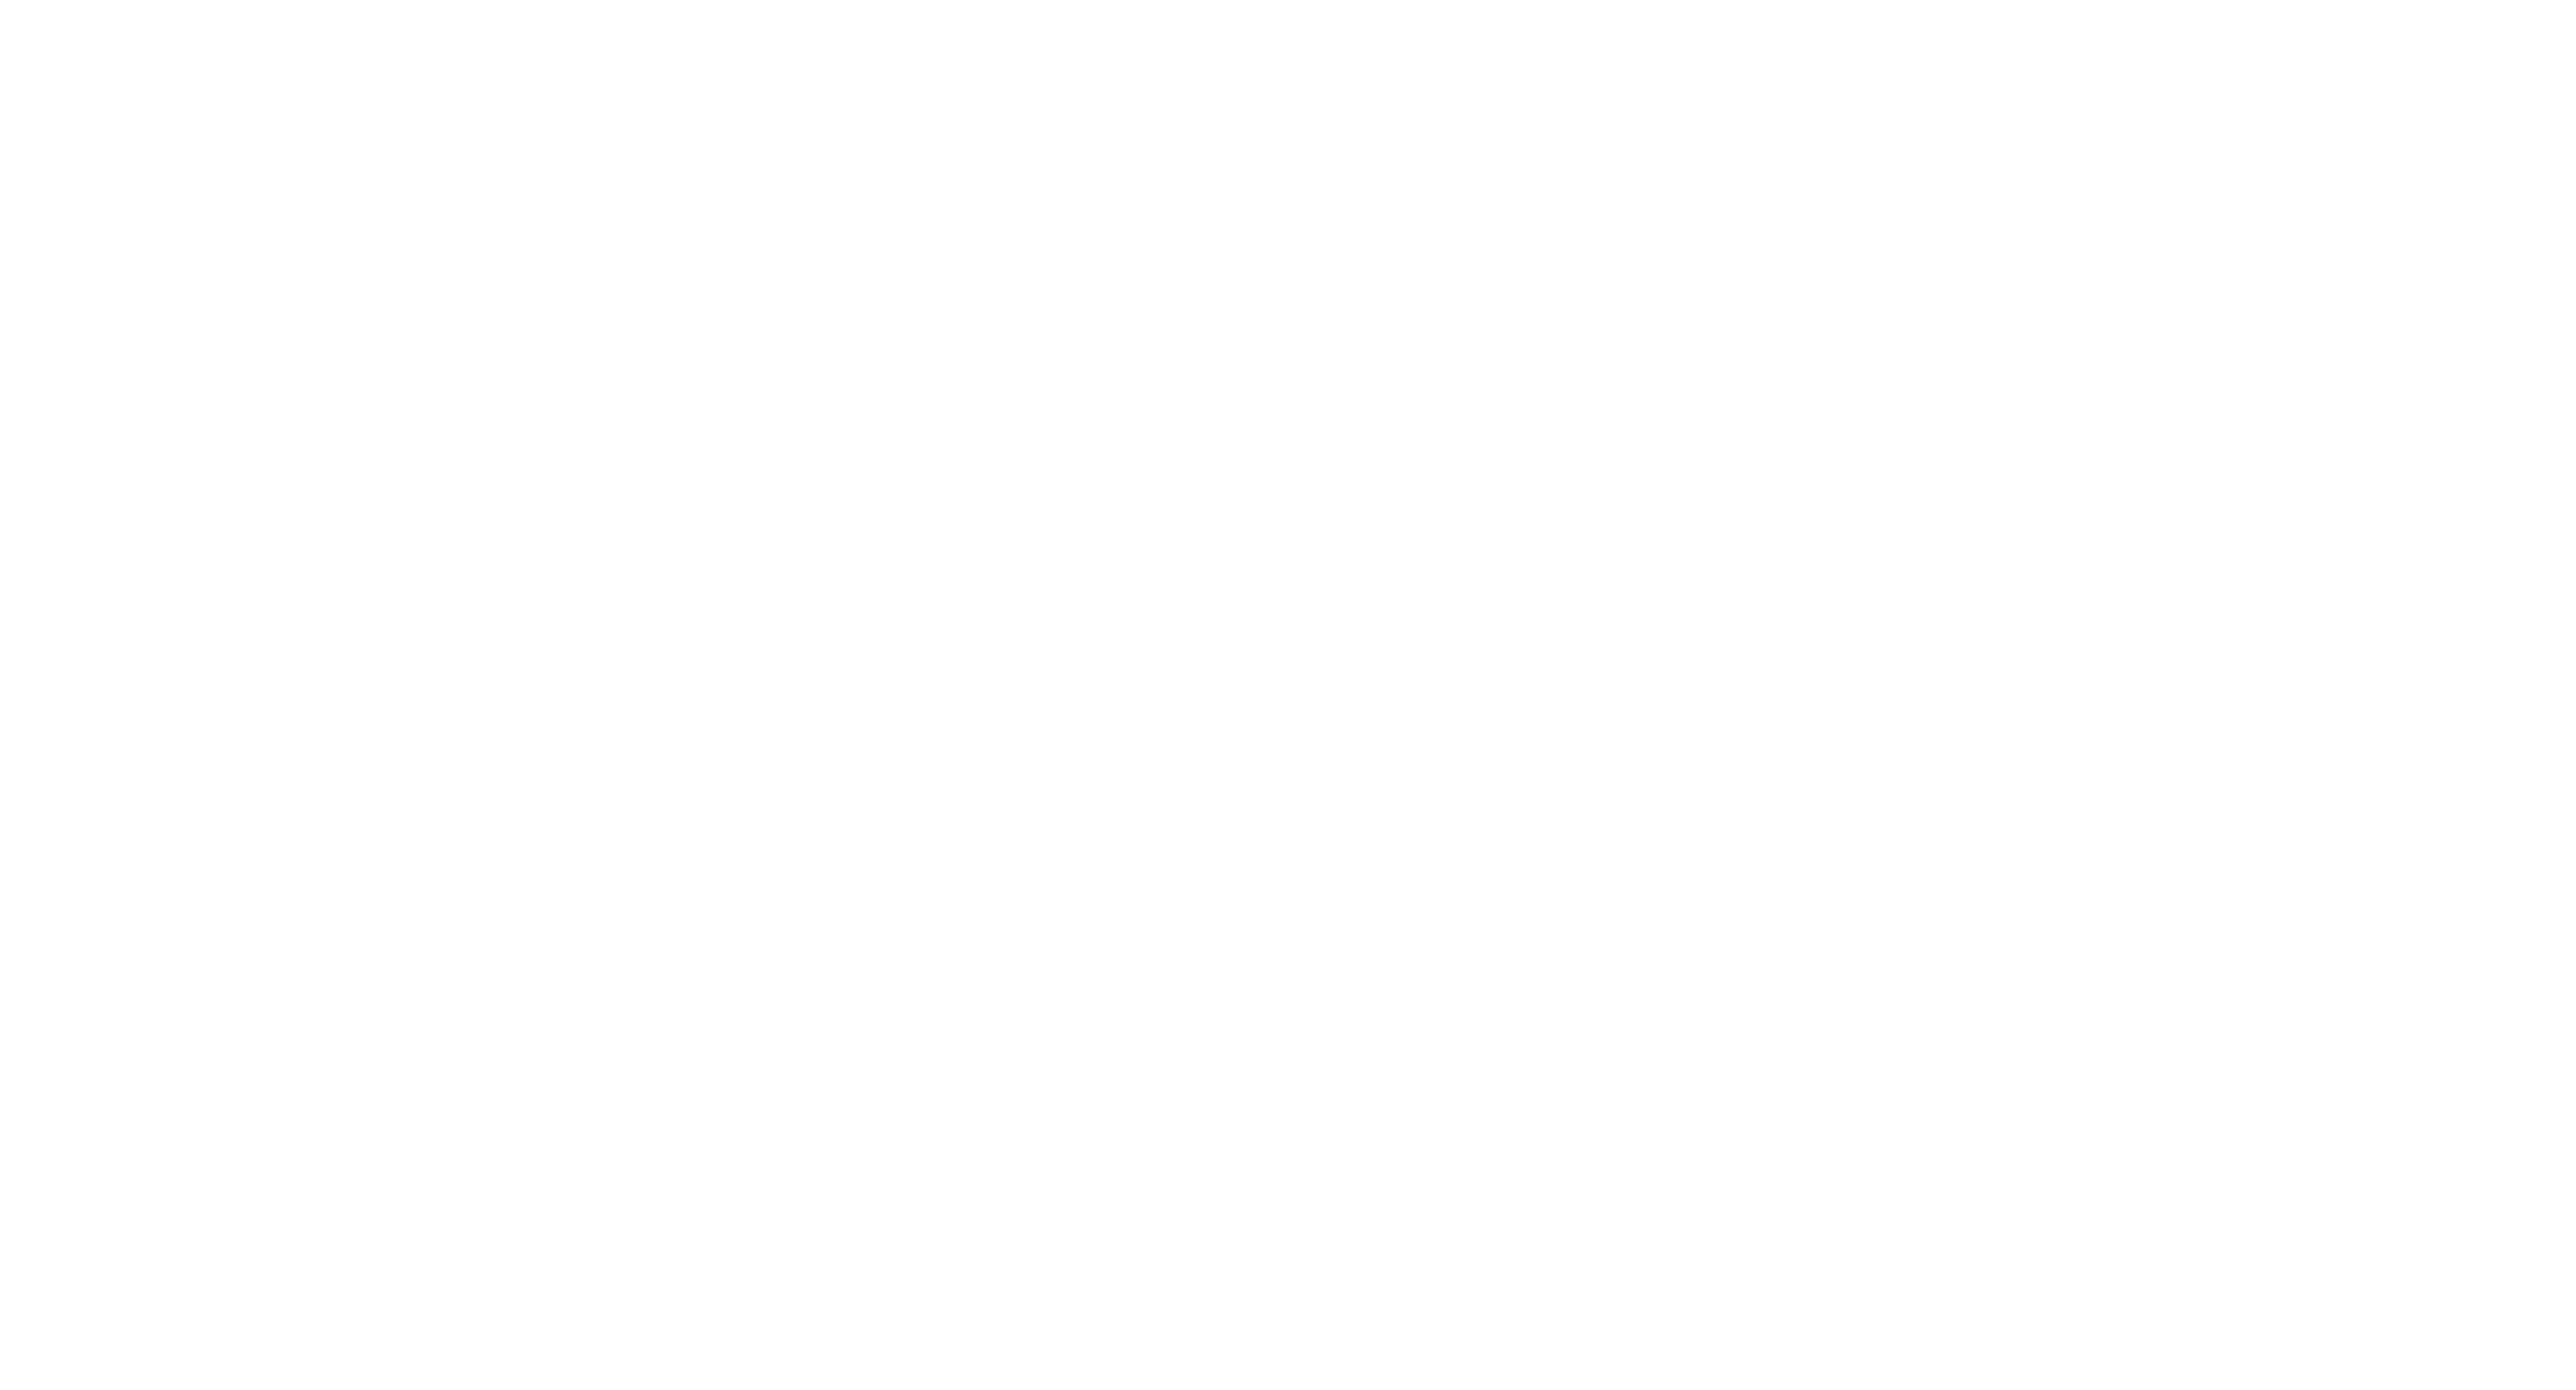 Ealing Liberal Democrats - working across Ealing Central & Acton, Ealing North and Ealing Southall